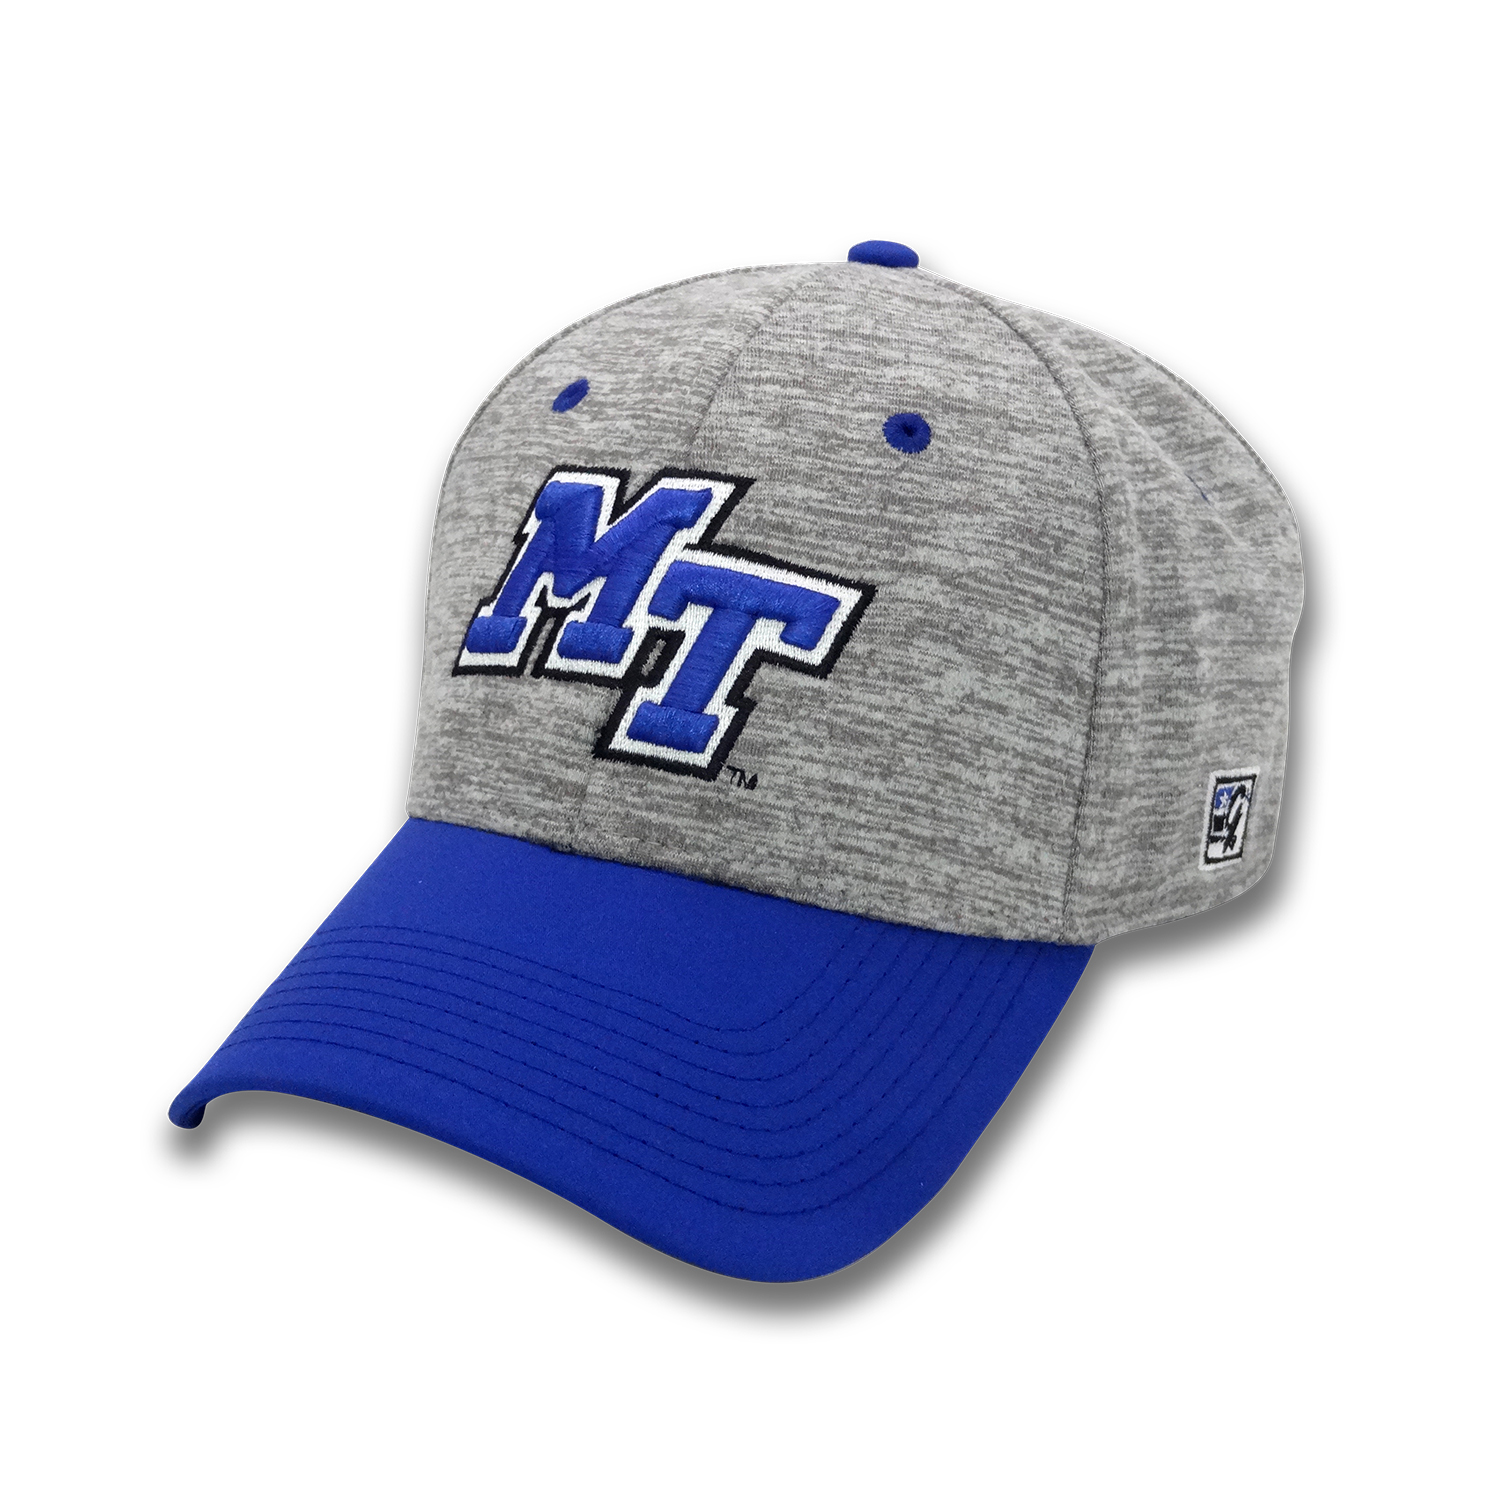 MT Logo Gamechanger Fitted Hat